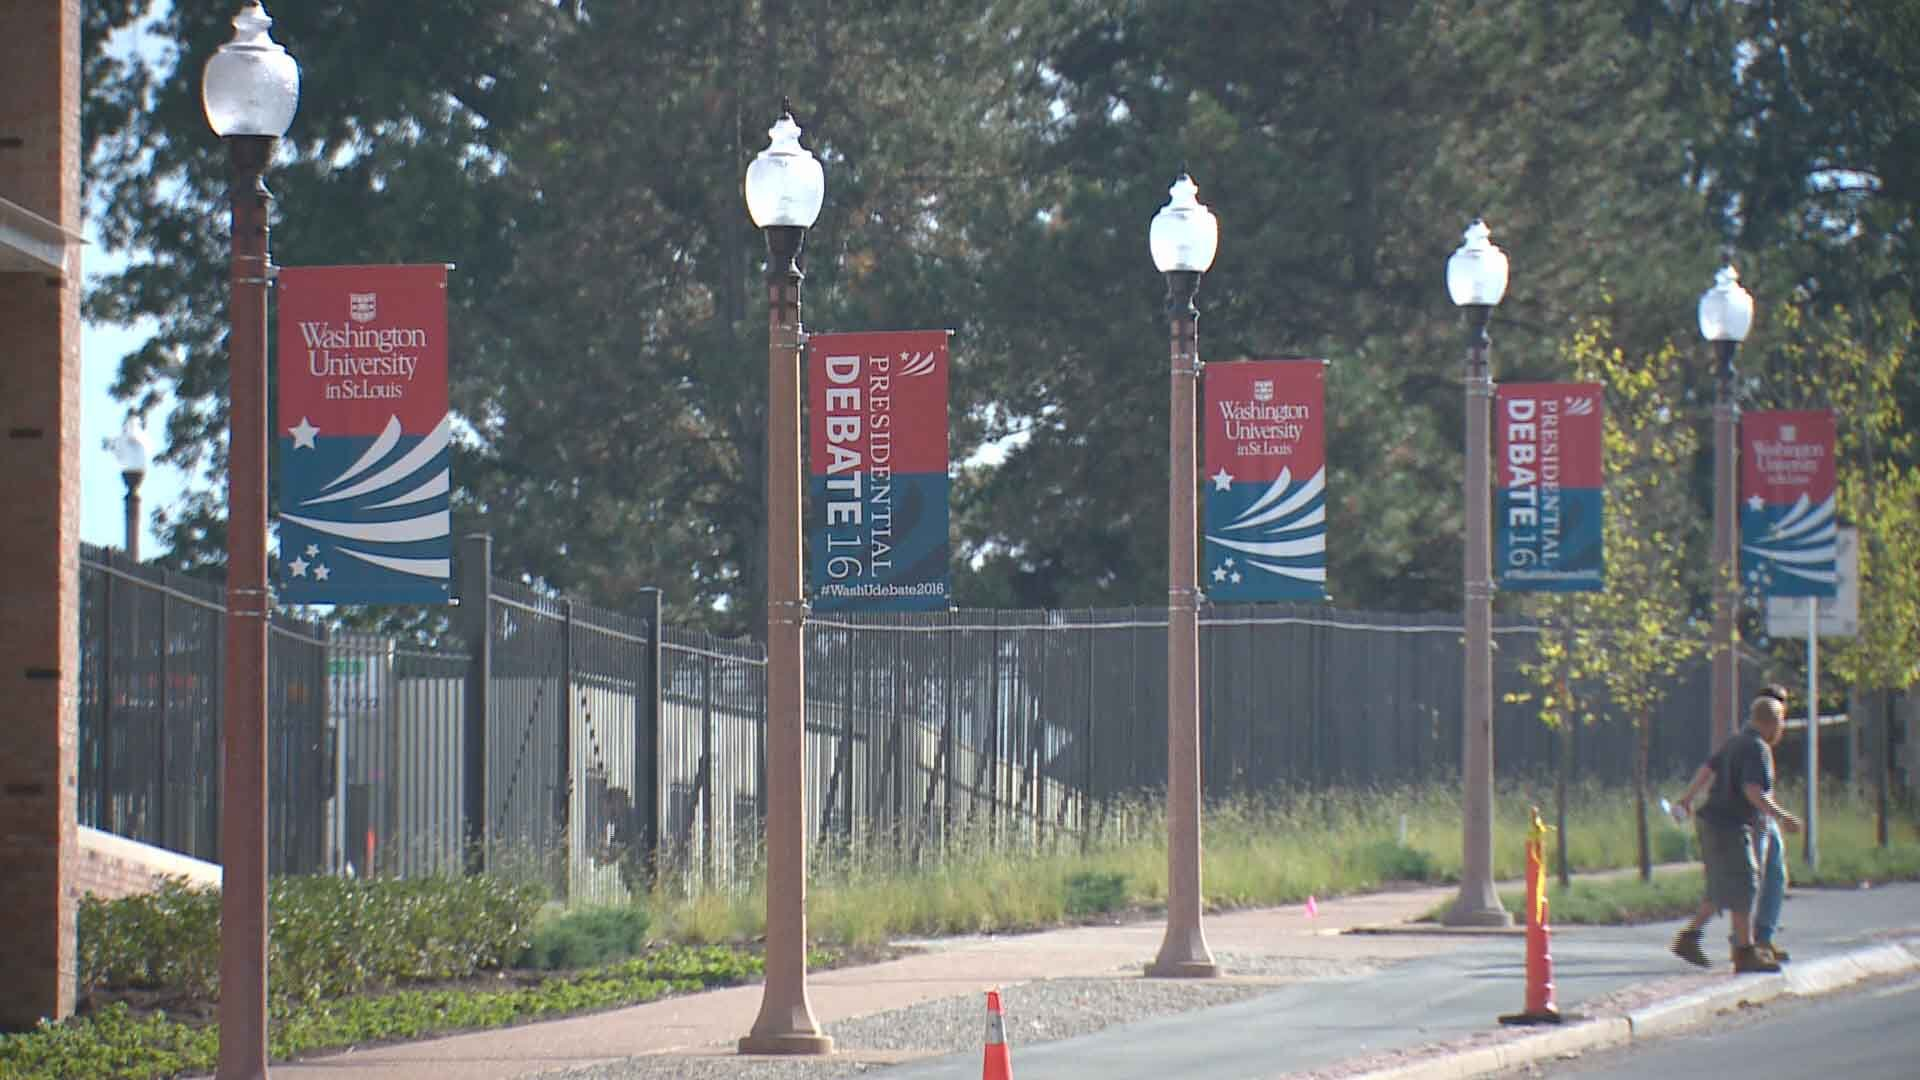 Washington University prepares to host debate (KMOV)